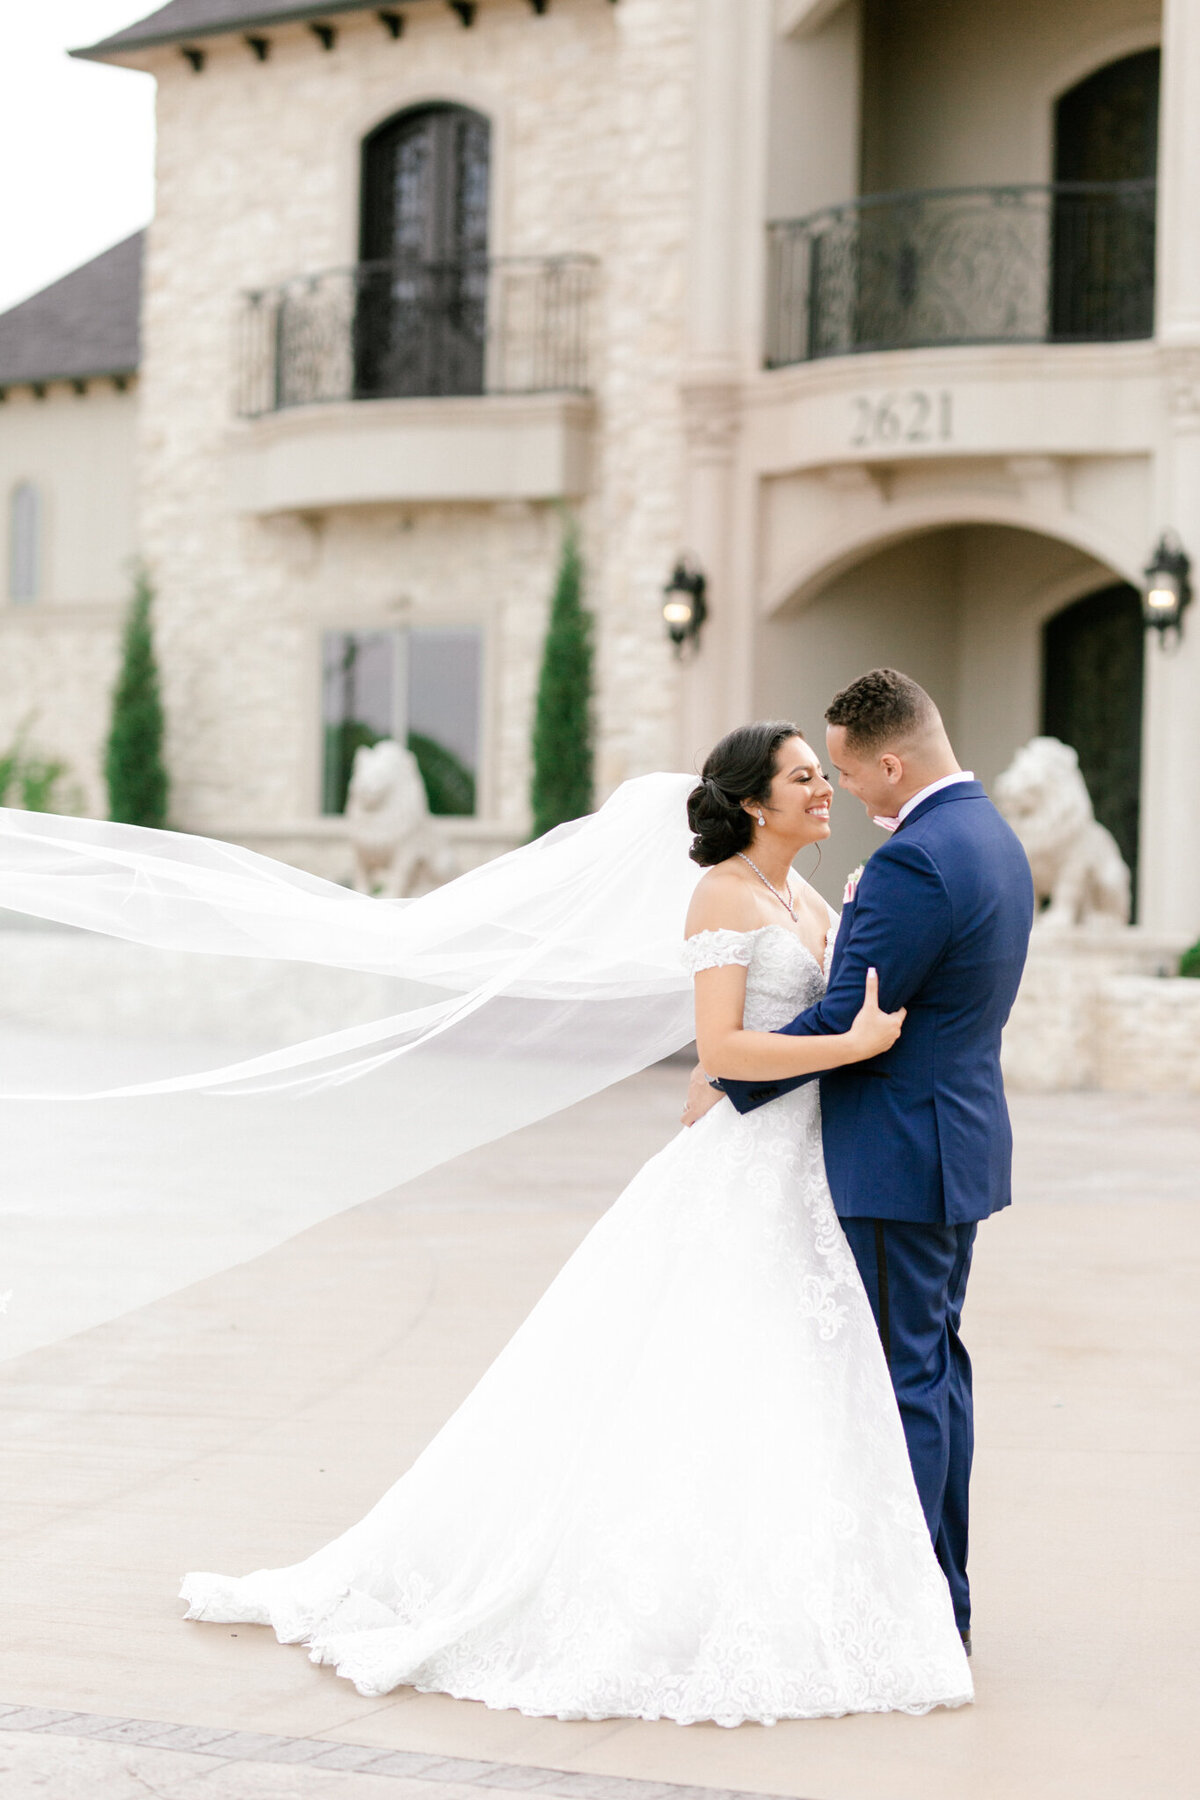 Jasmine & Josh Wedding at Knotting Hill Place | Dallas DFW Wedding Photographer | Sami Kathryn Photography-14